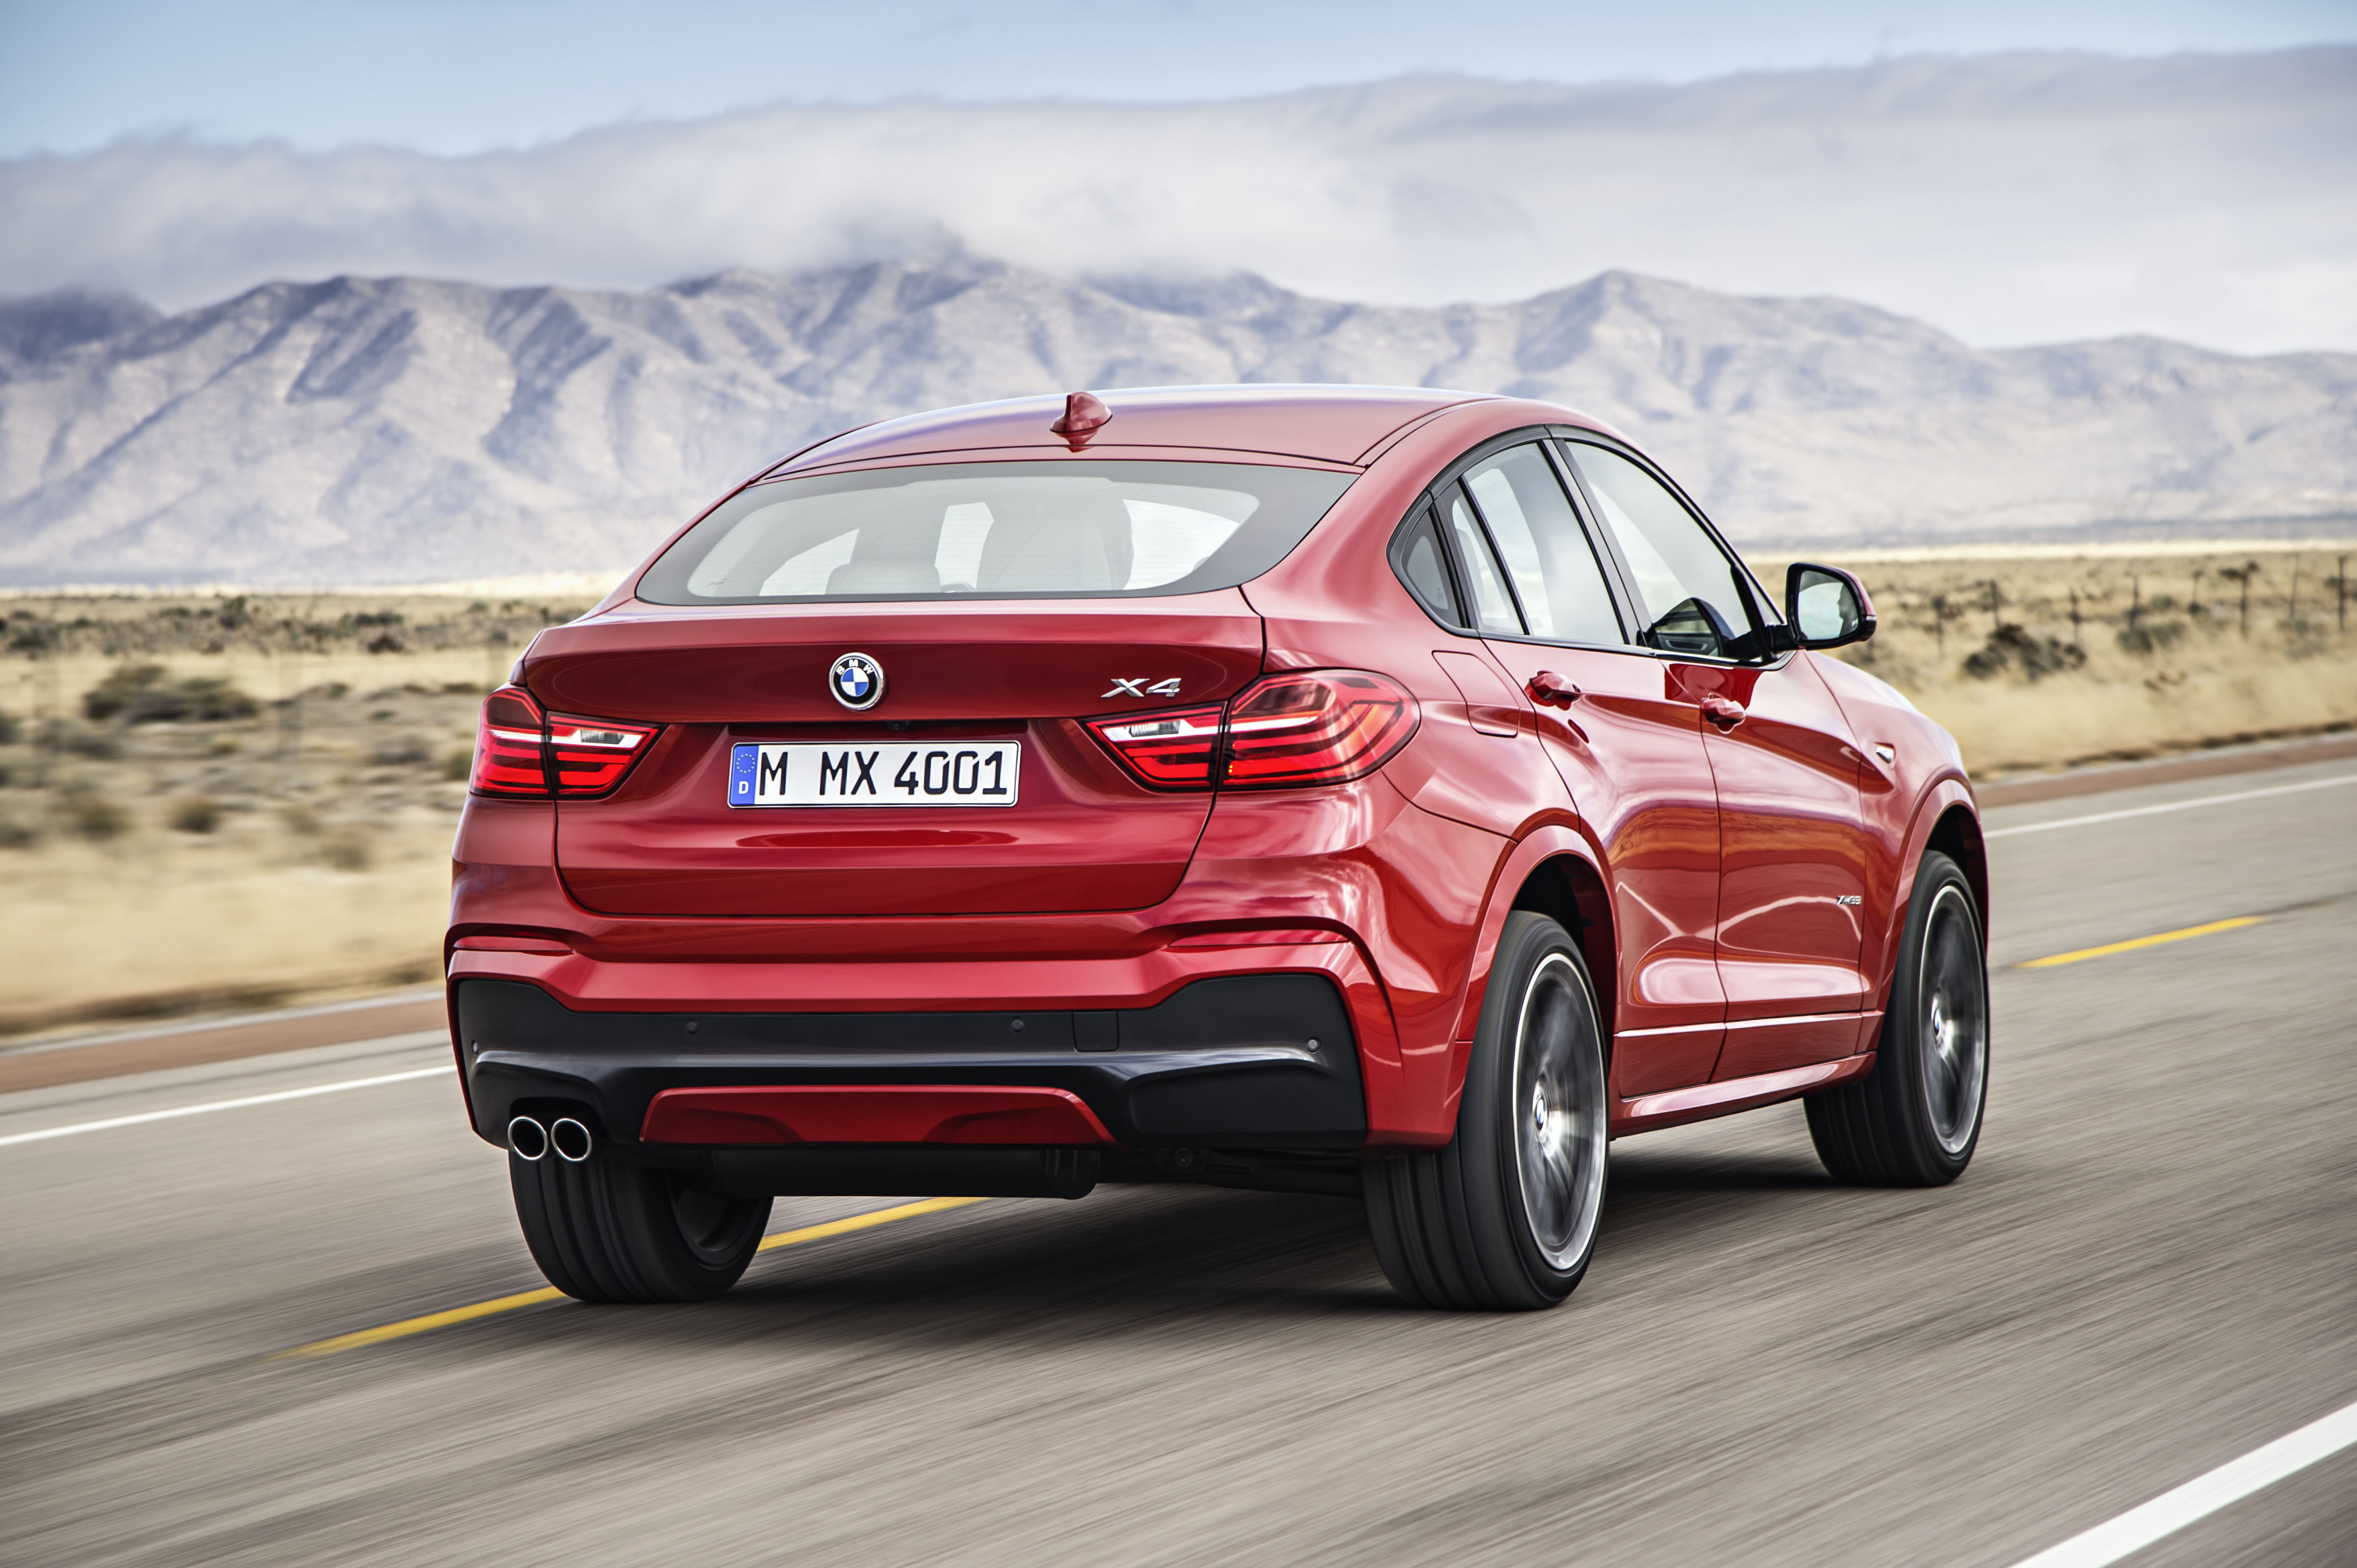 Bmw X4 Sport Activity Coupe Unleashed Motor Review